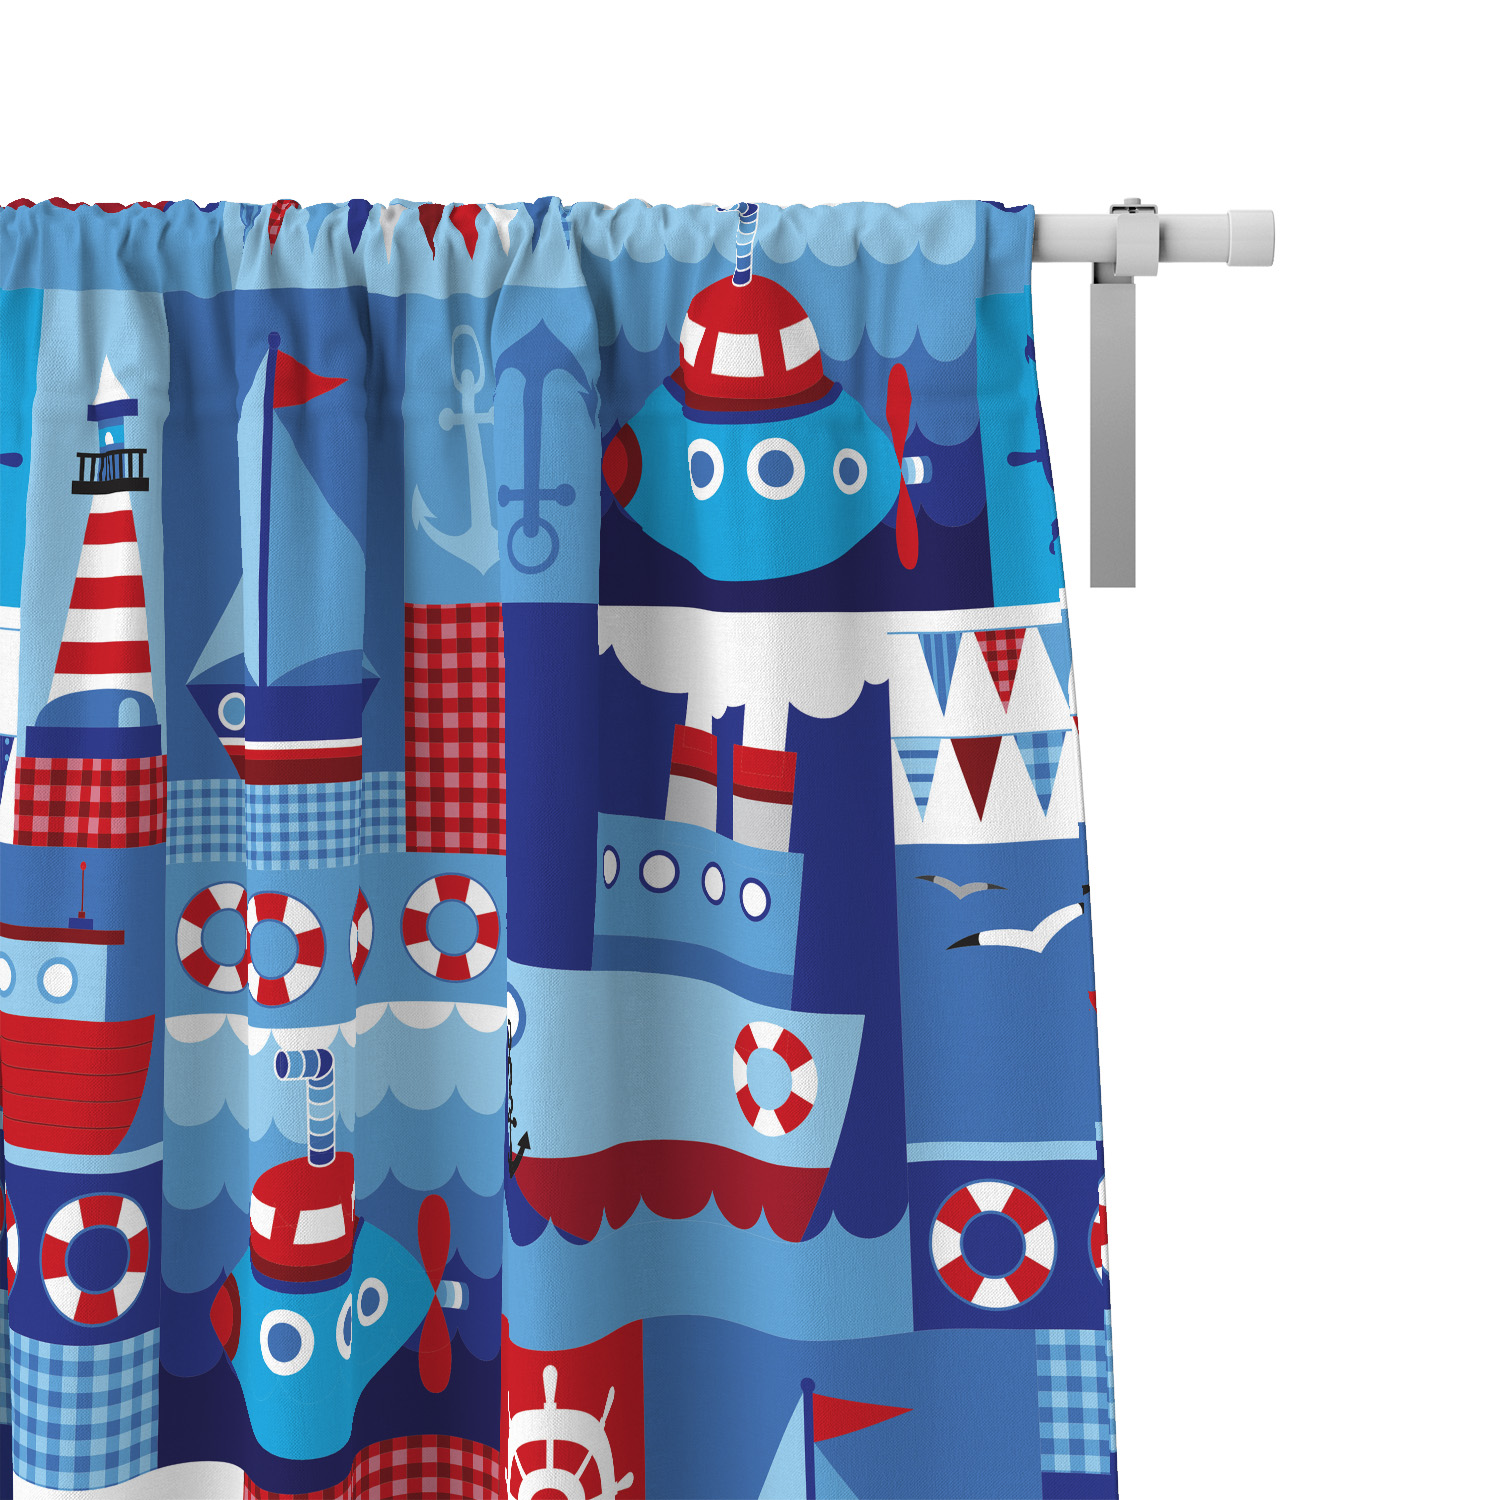 PKWC00008-OceanAdventures-CURTAINS Boys Kids Colorful Window Curtains Decor Accesories by Pickleberry Kids